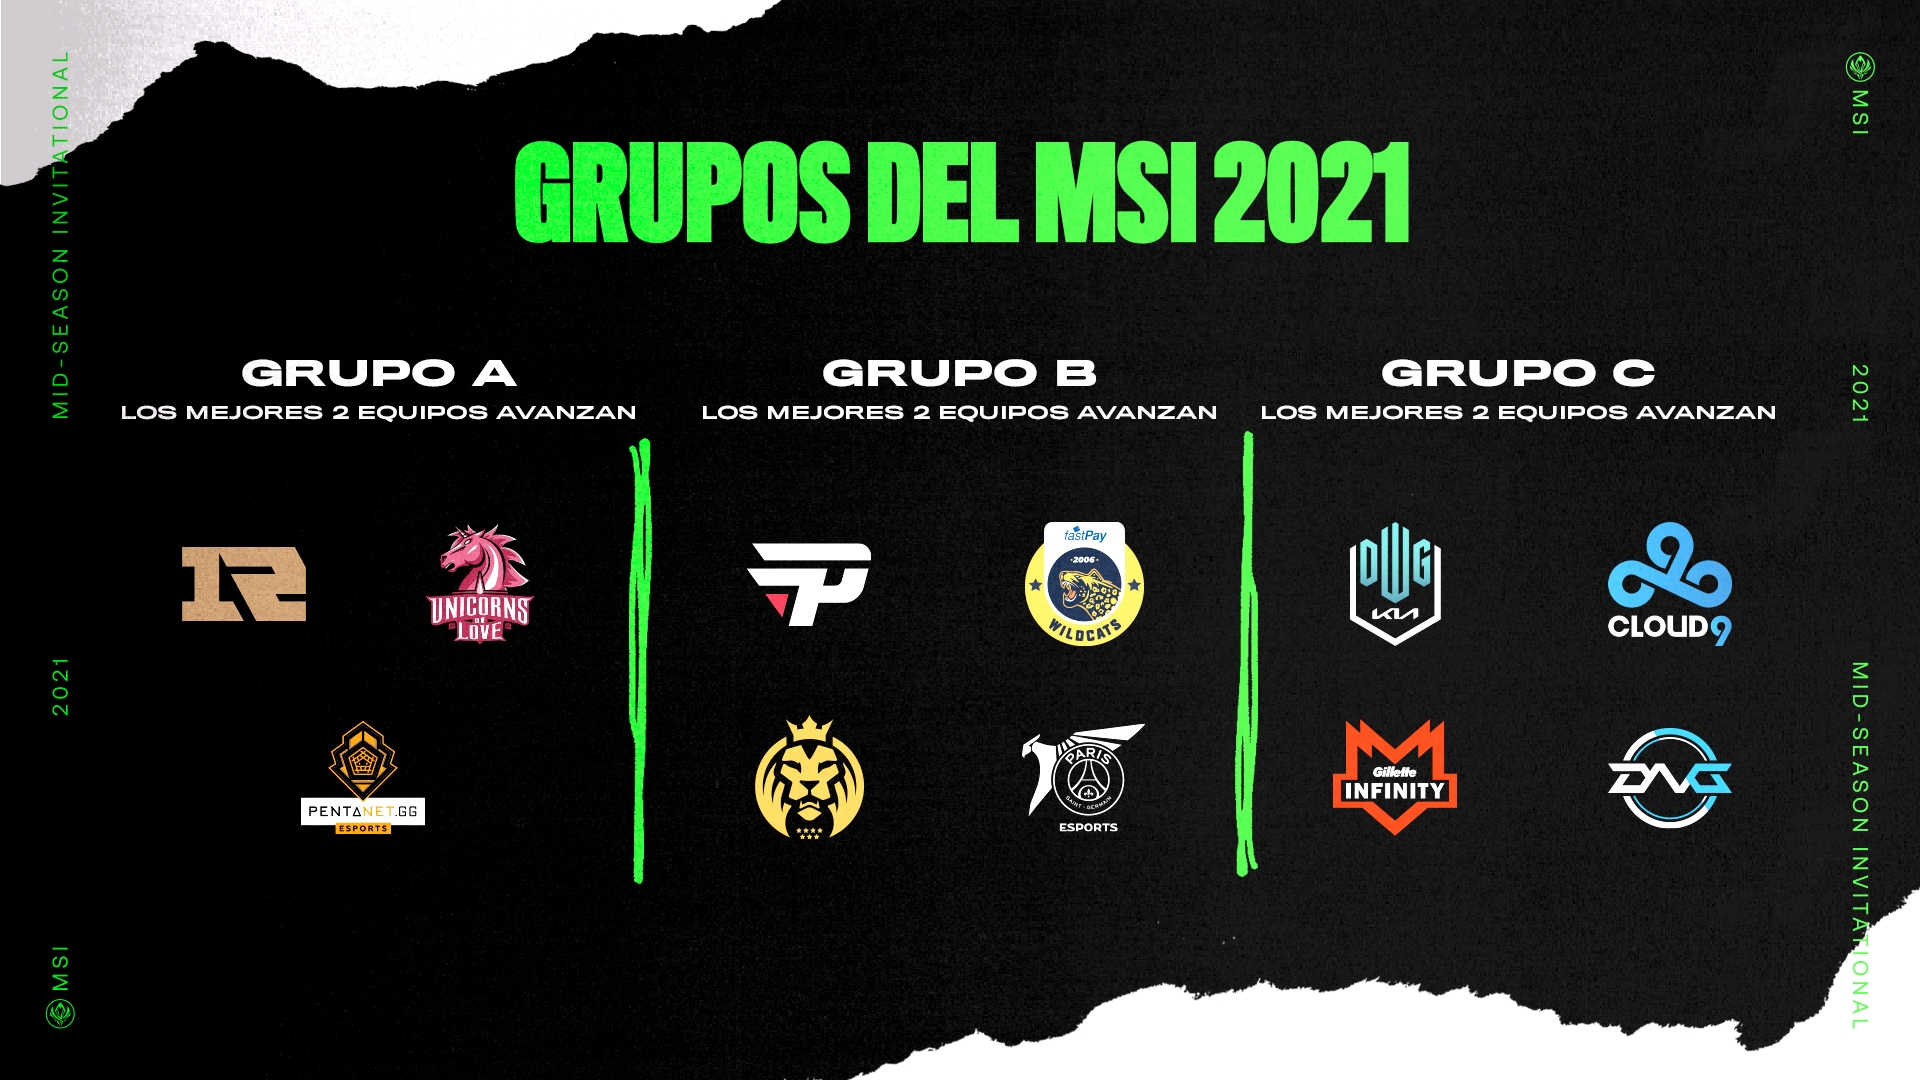 Grupos MSI 2021 League of Legends